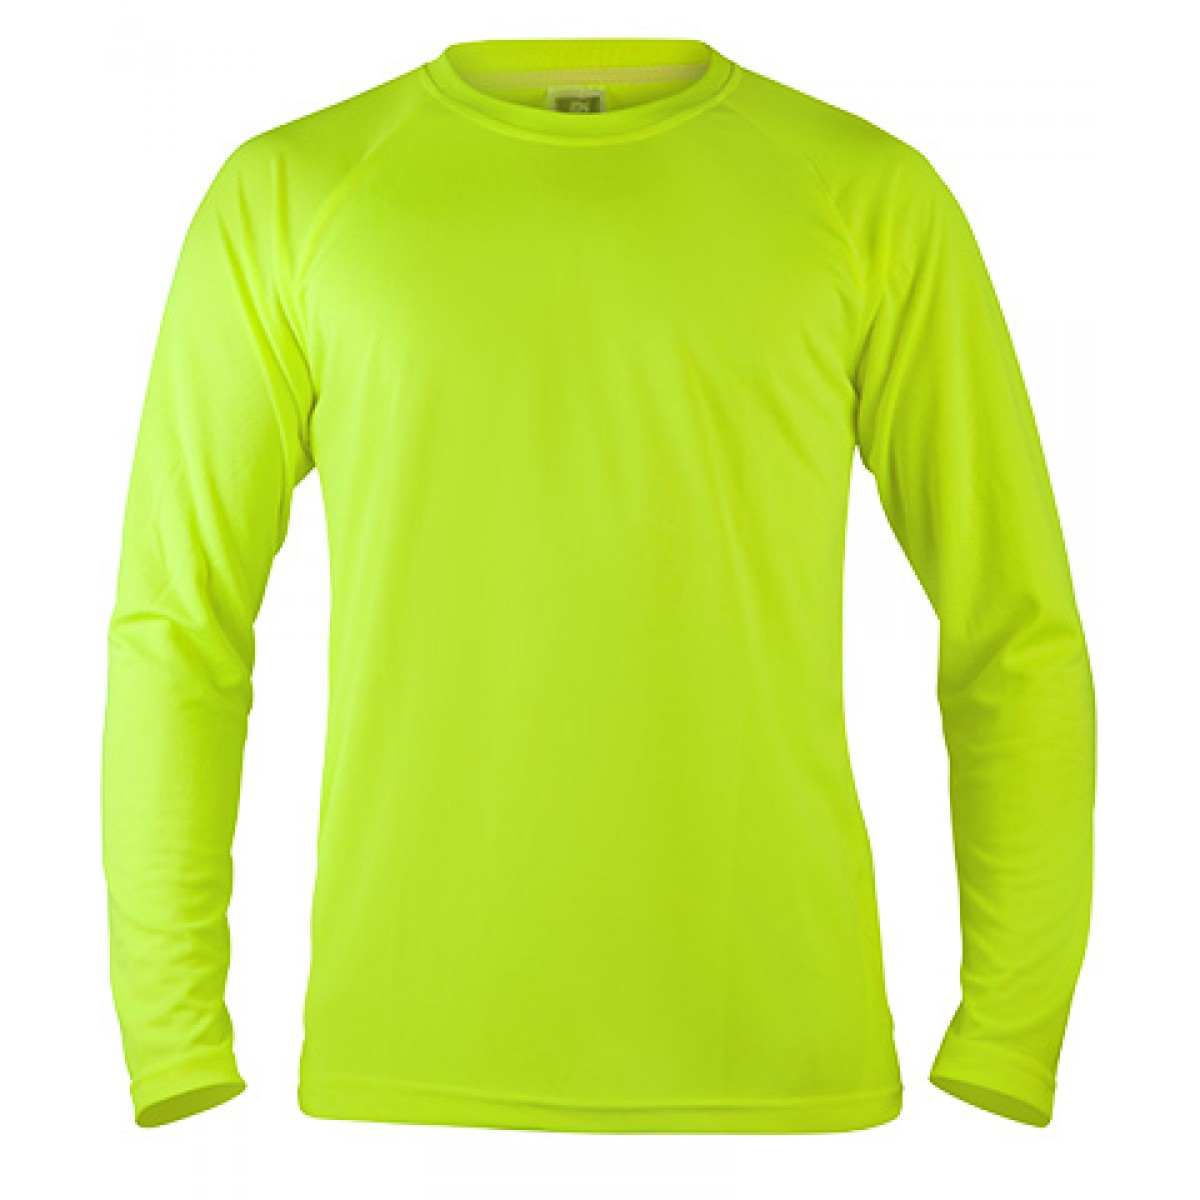 Long Sleeve Mesh Performance T-shirt-Neon Green-2XL